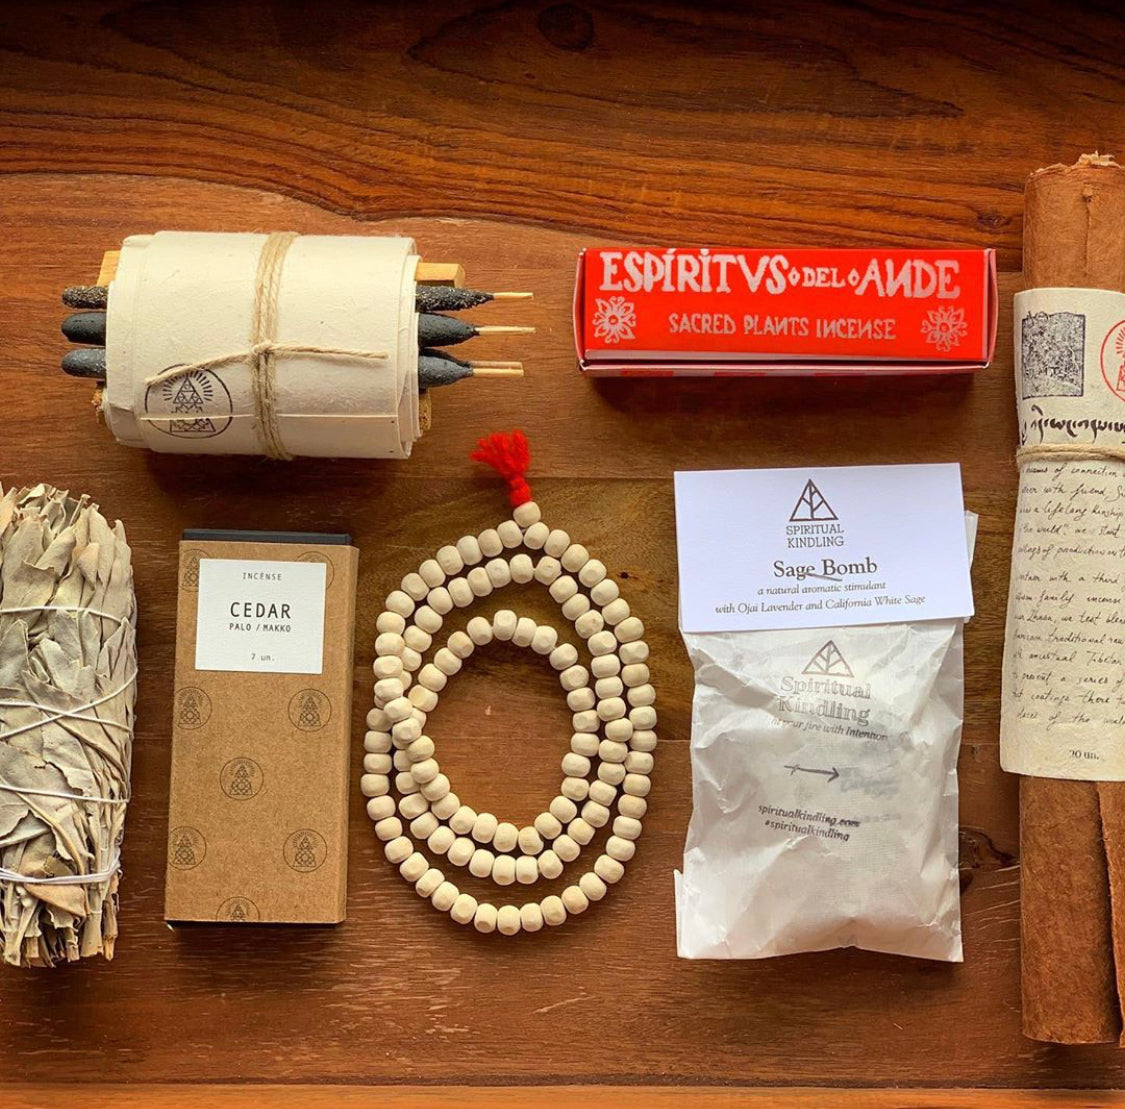 Mind, Body, and soul bundle. Wild White Sage, make, Simti, bath and meditation bundle, Espiritus Del Ande - Palo Santo Blends, sage bomb, Bamford Mala Sandalwood Prayer Beads